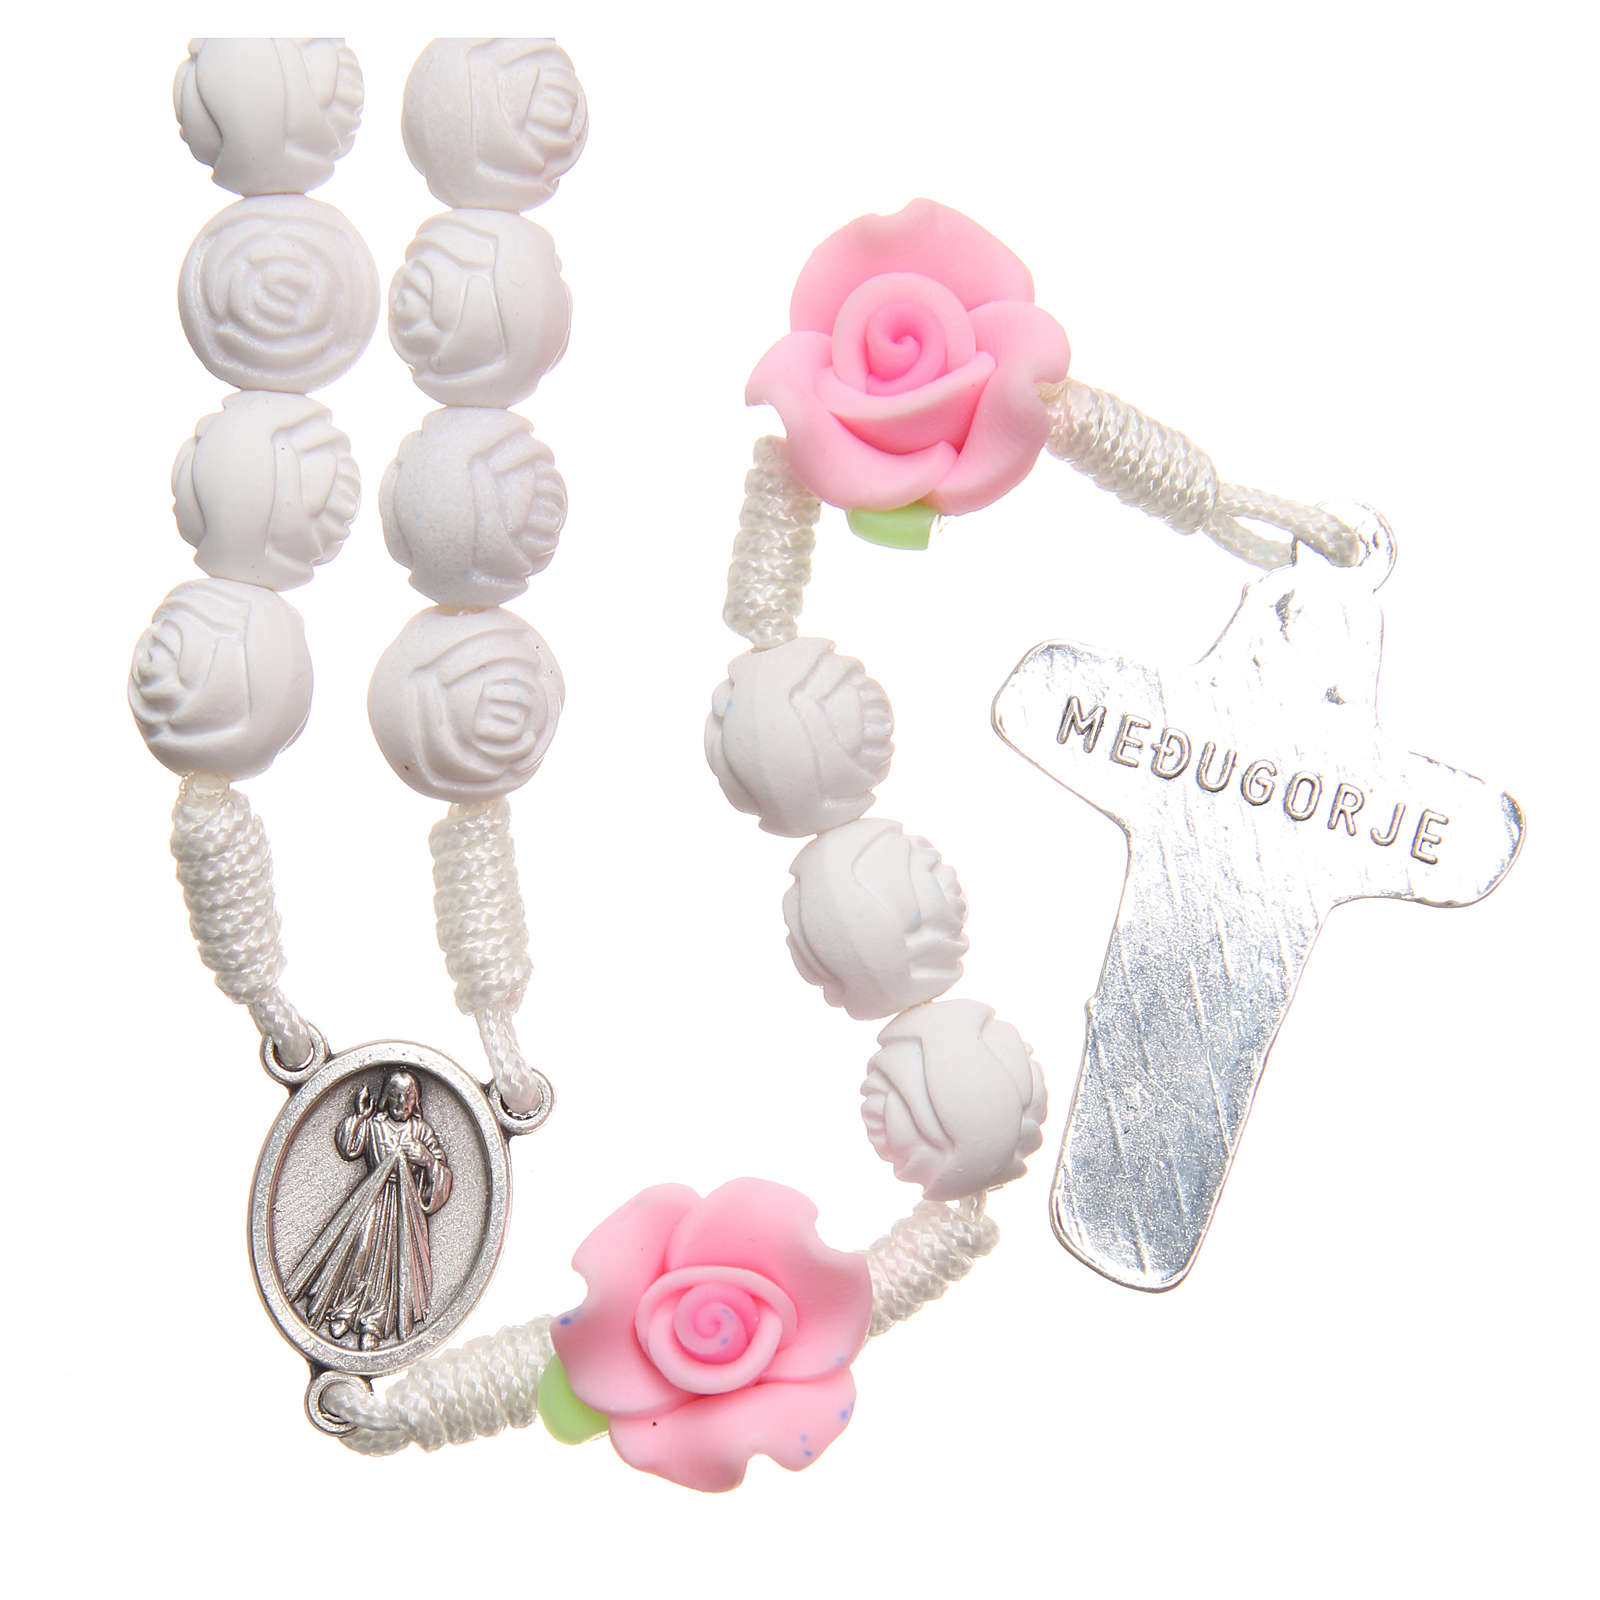 Medjugorje rosary beads with white roses 4